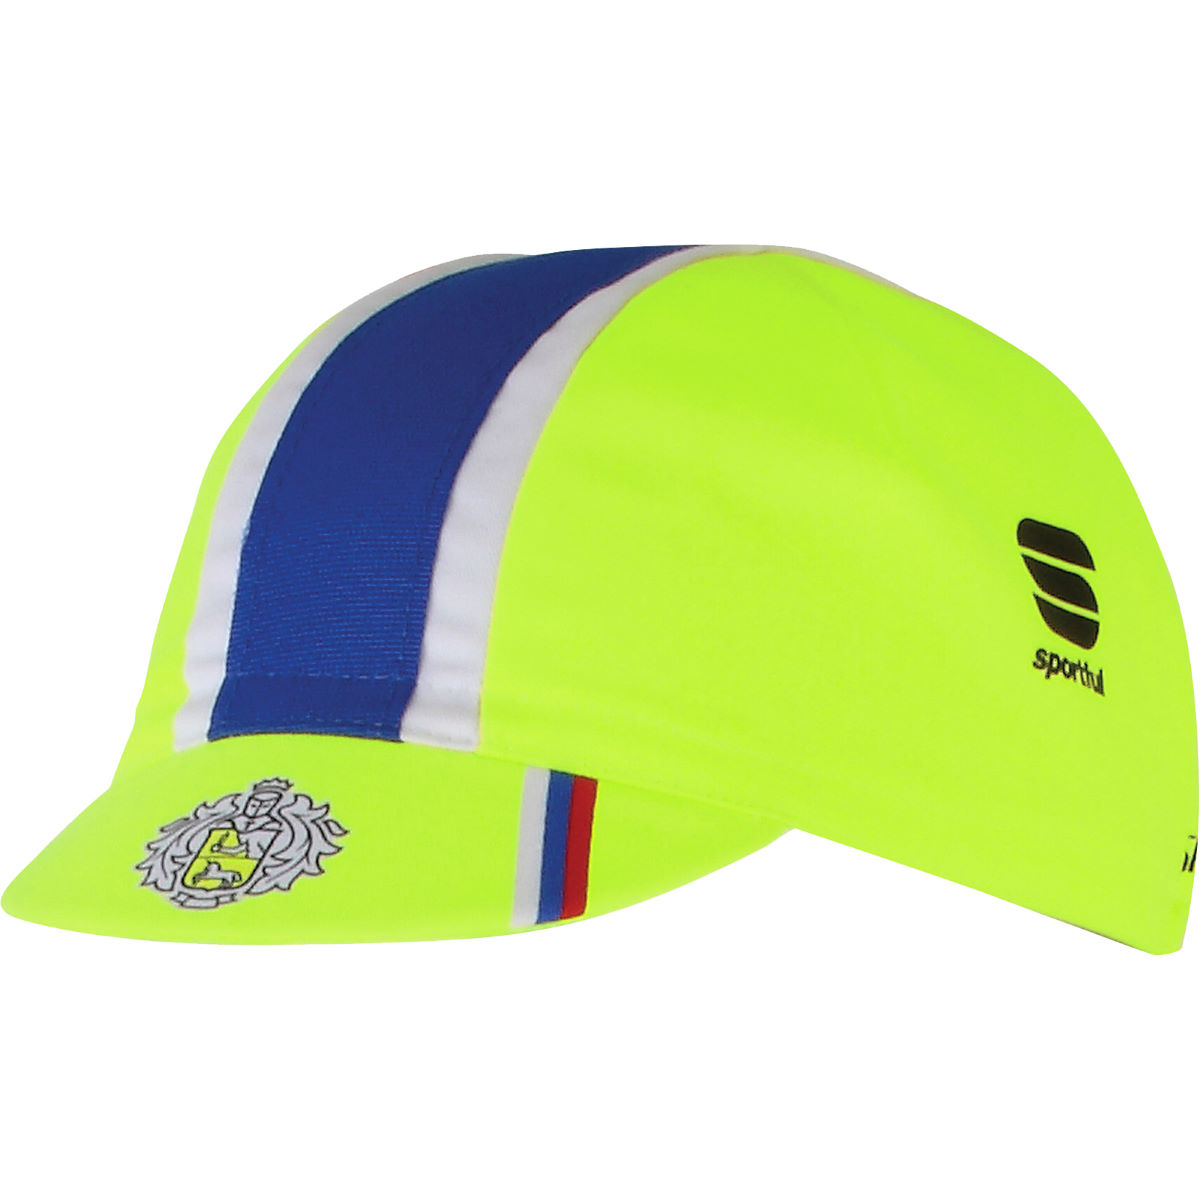 Sportful Tinkoff-Saxo Cycling Cap